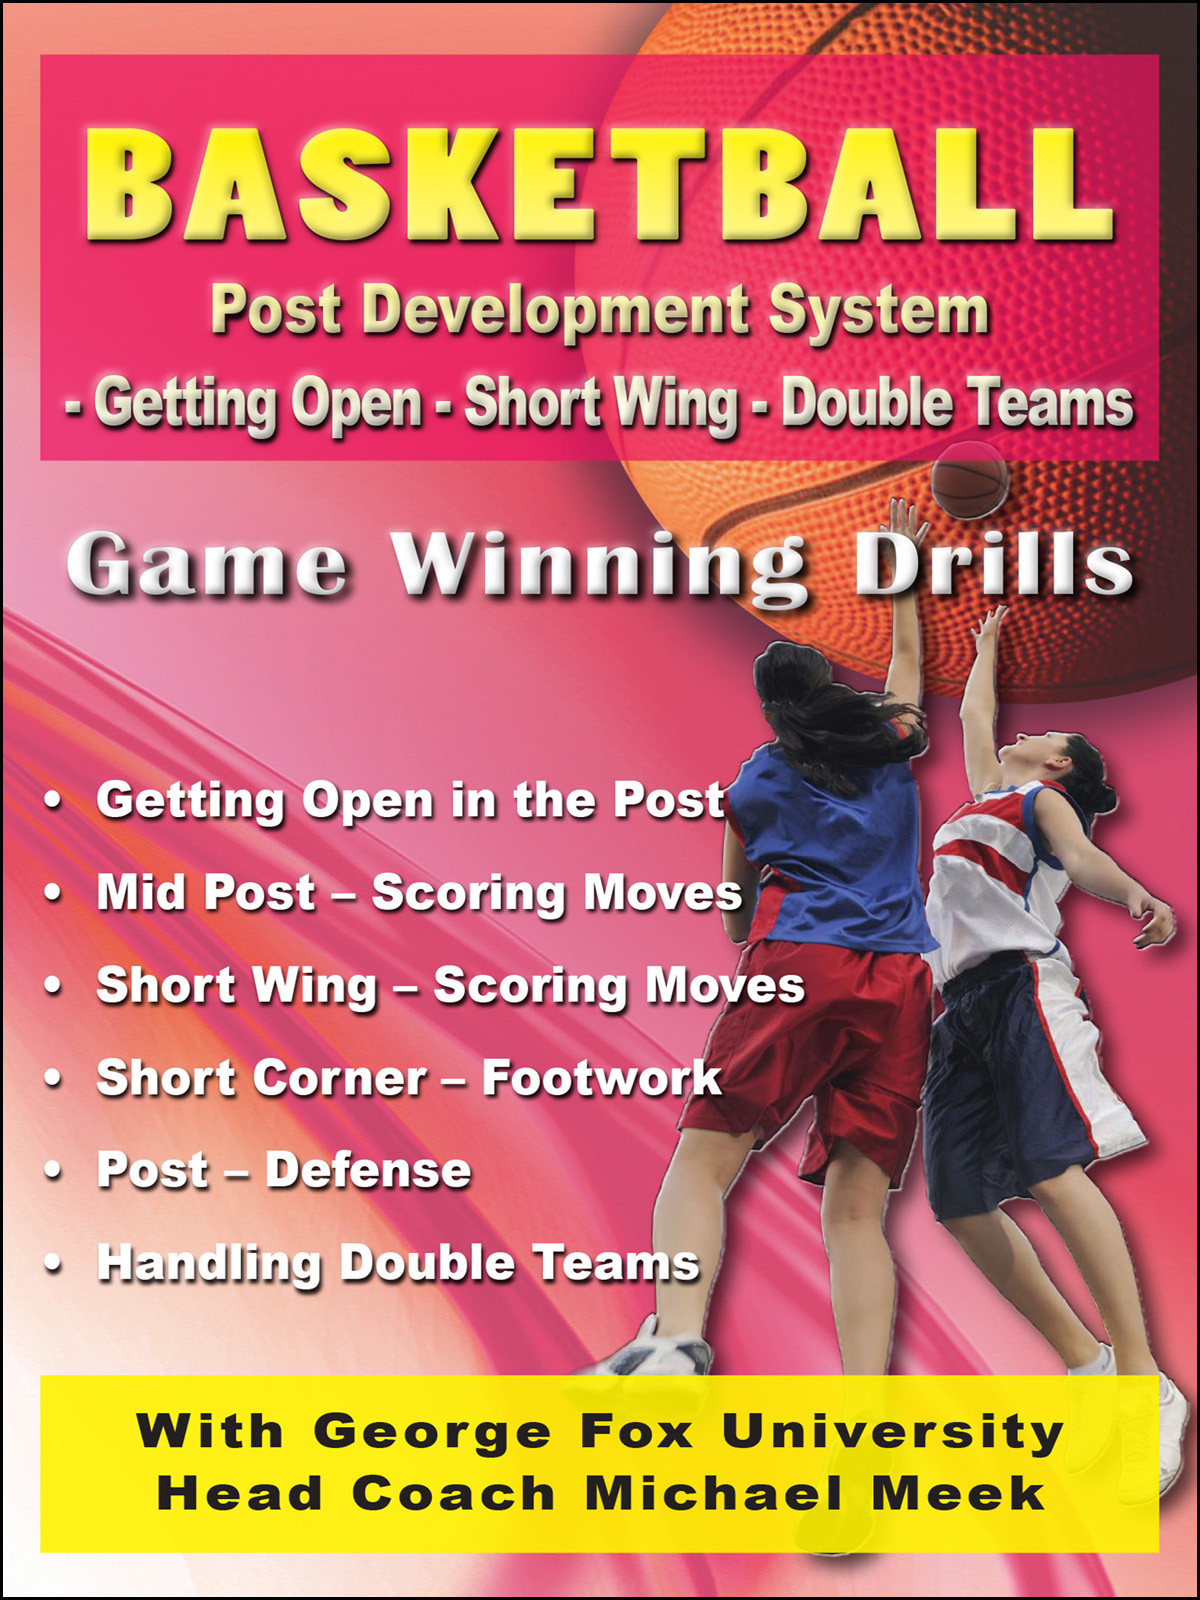 K4209 - Basketball Post Development System ? Getting Open-Short Wing-Double Teams